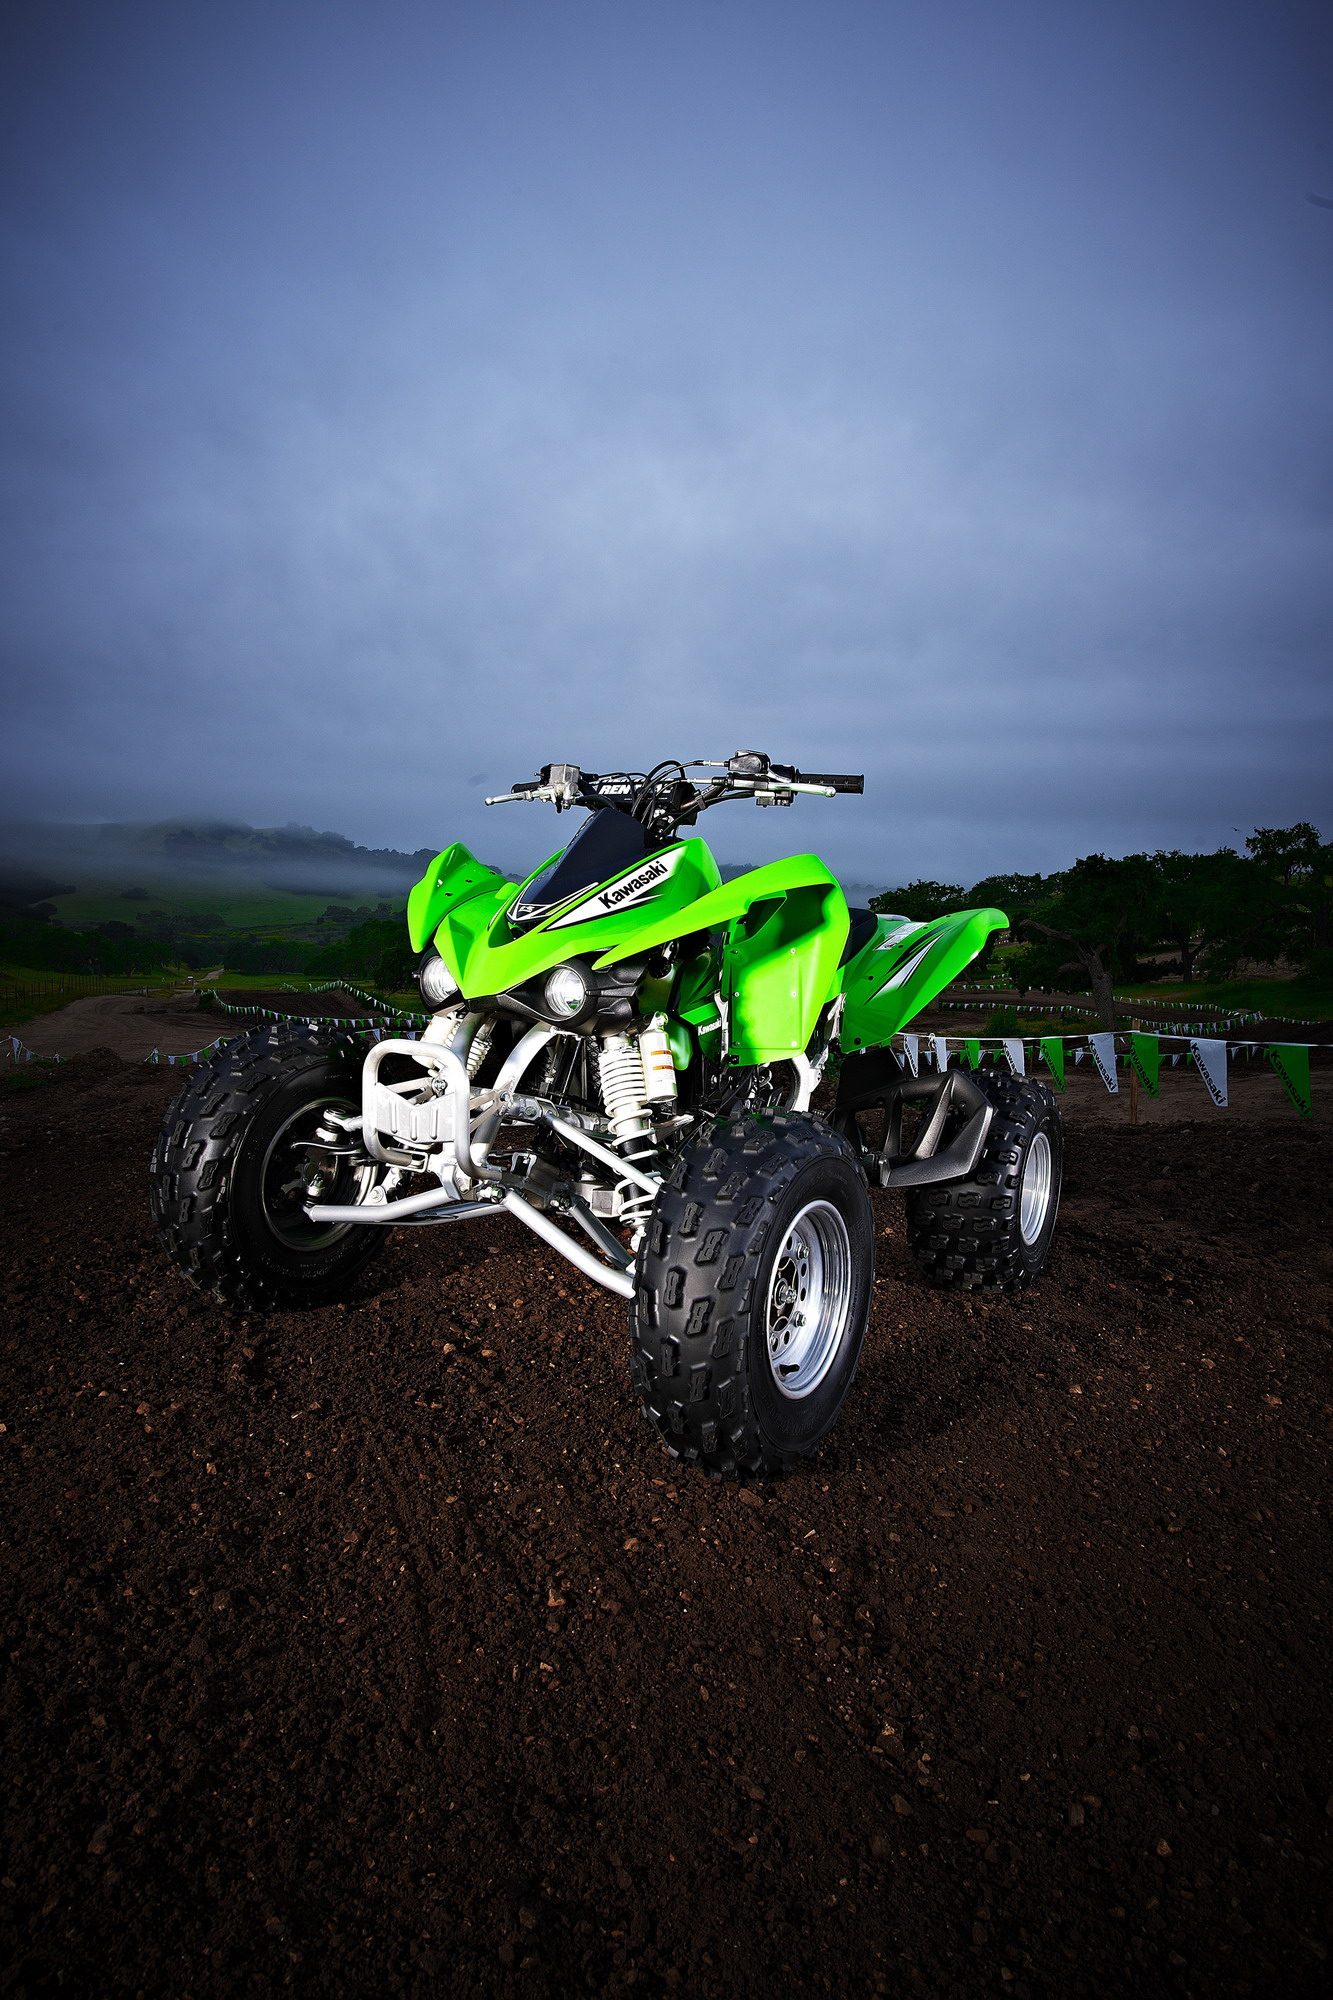 450 Best Images About Makeup On Pinterest: 2012 Kawasaki KFX 450R Gallery 401485